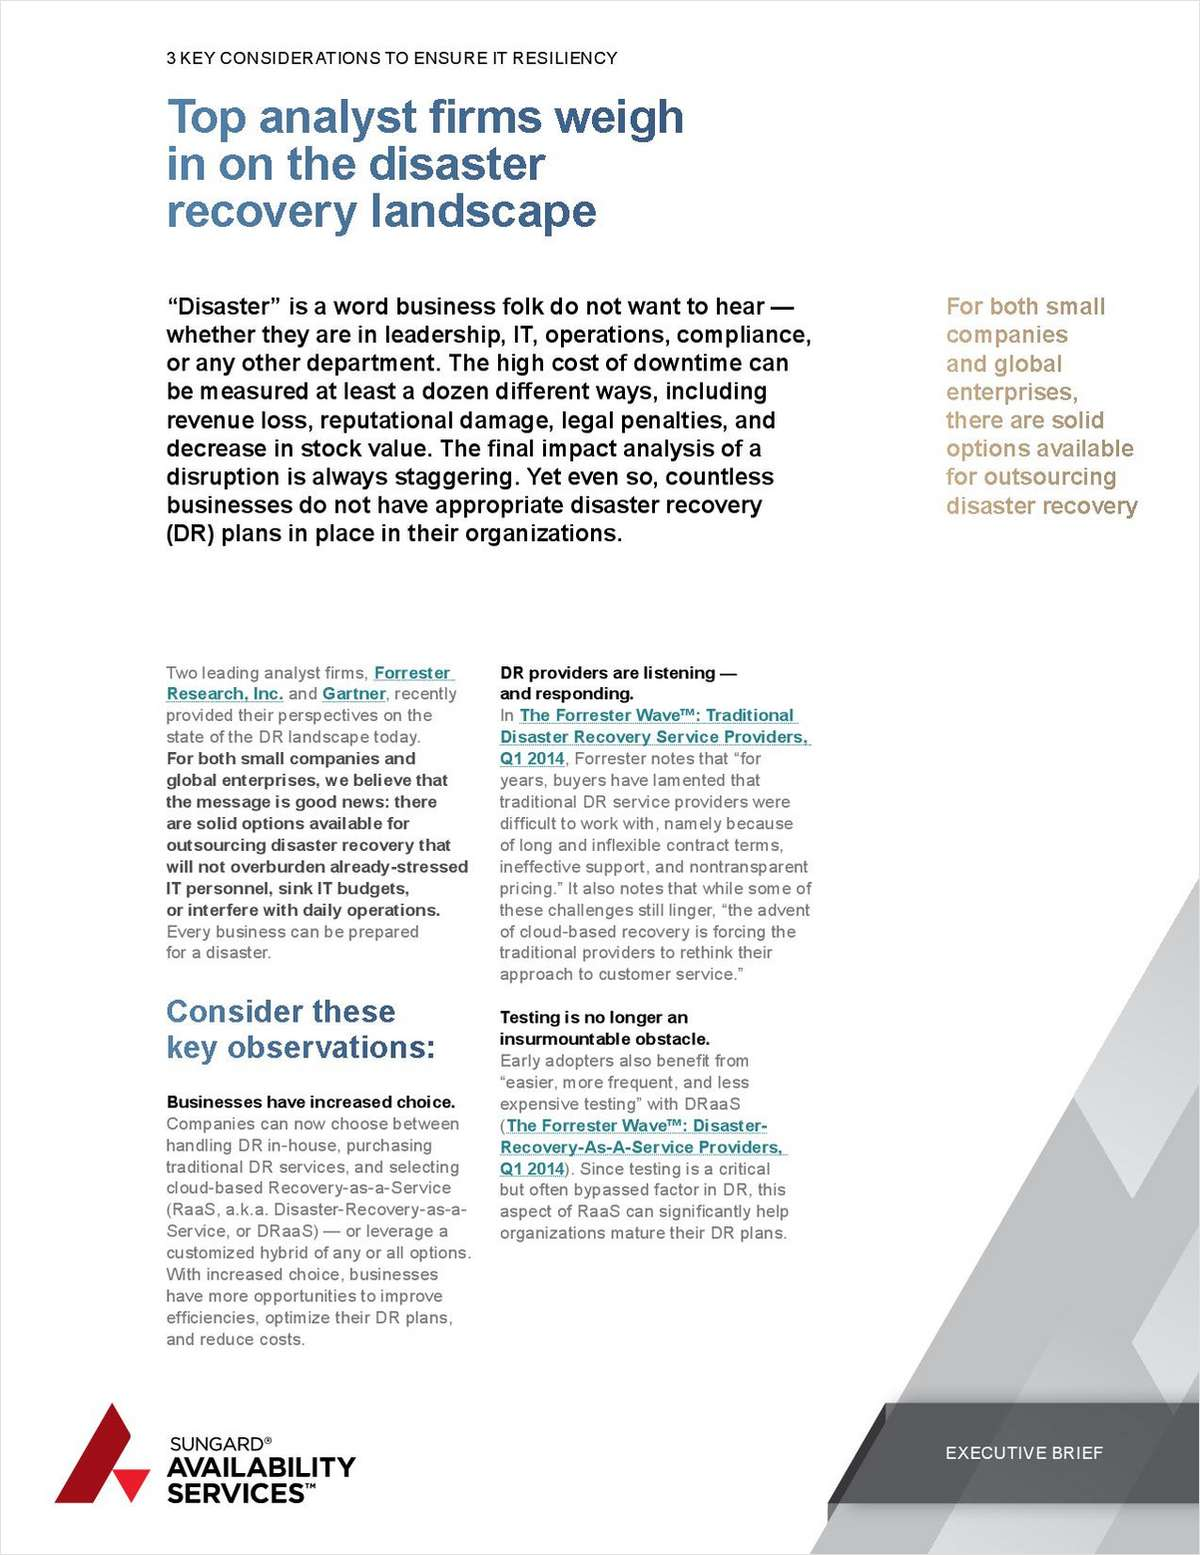 Top Analysts Weigh in on the Disaster Recovery Landscape